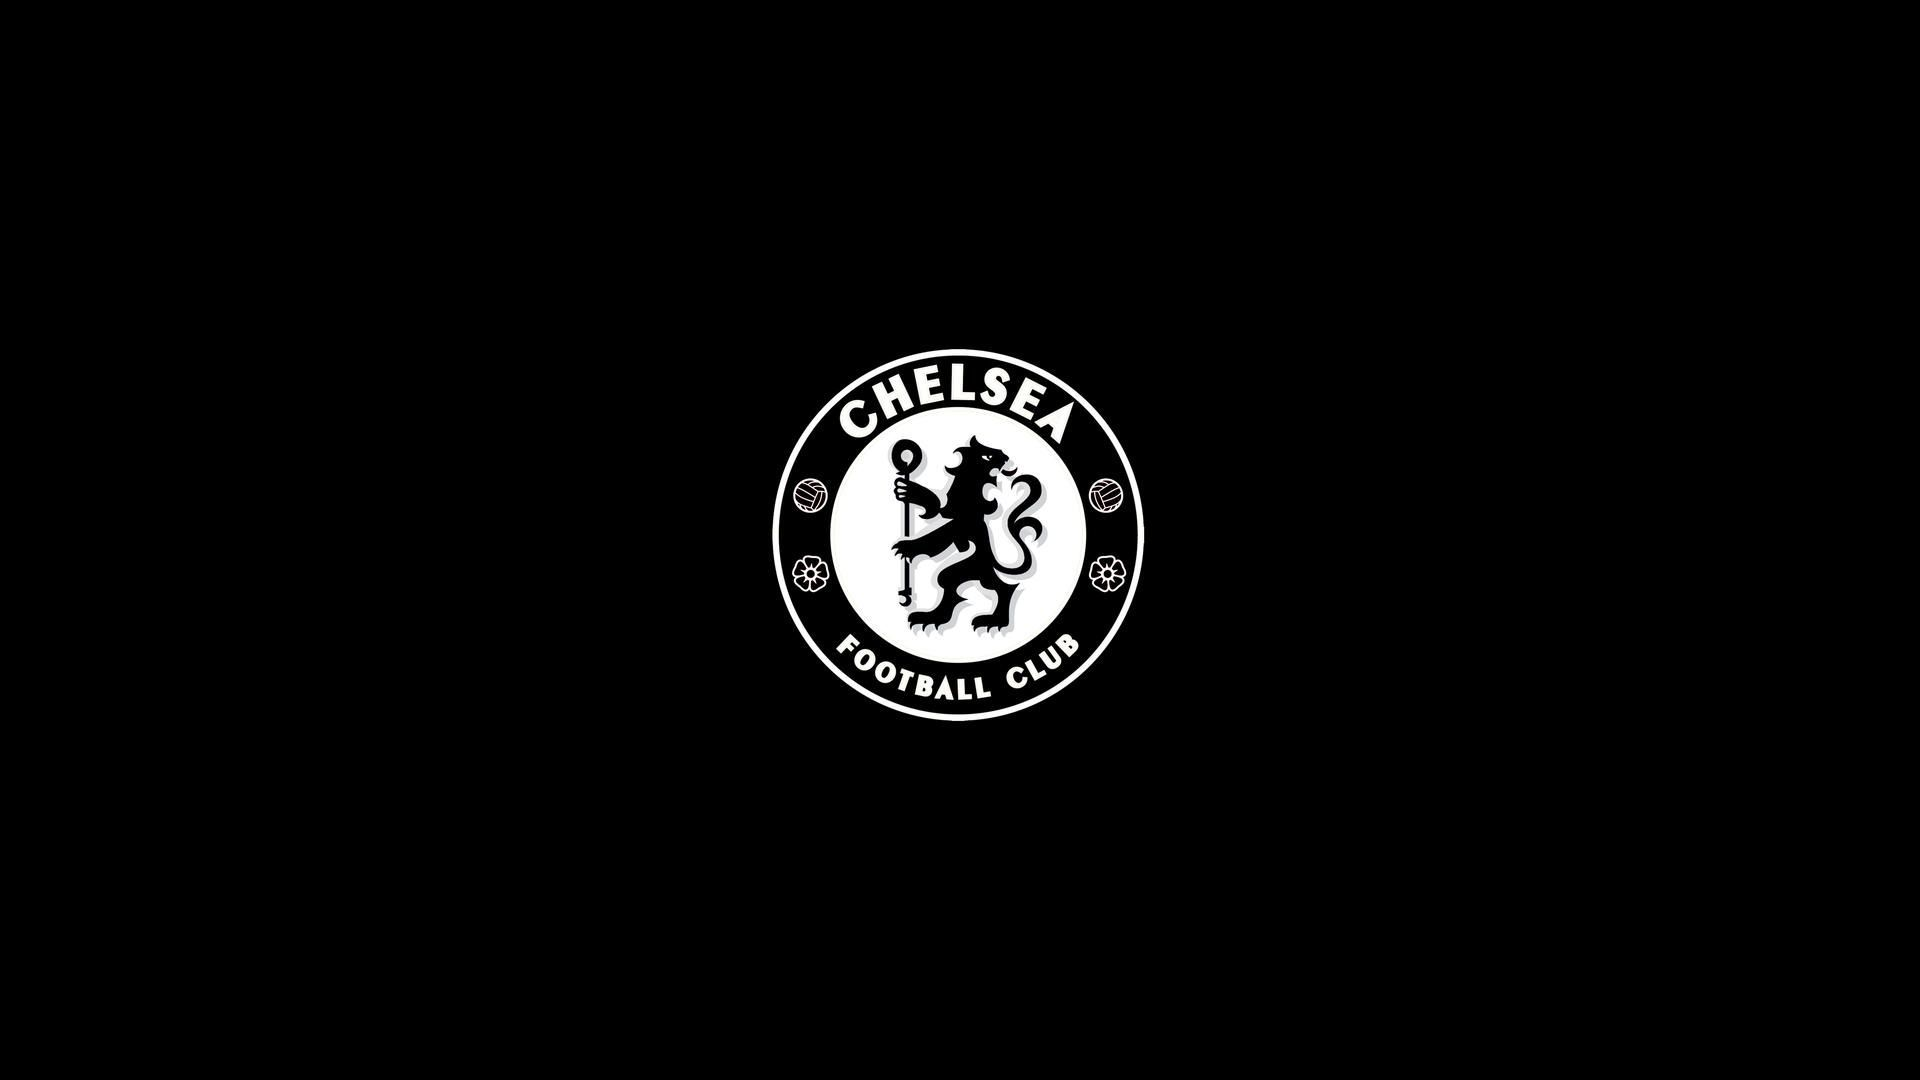 Chelsea Iphone Wallpaper Olahraga